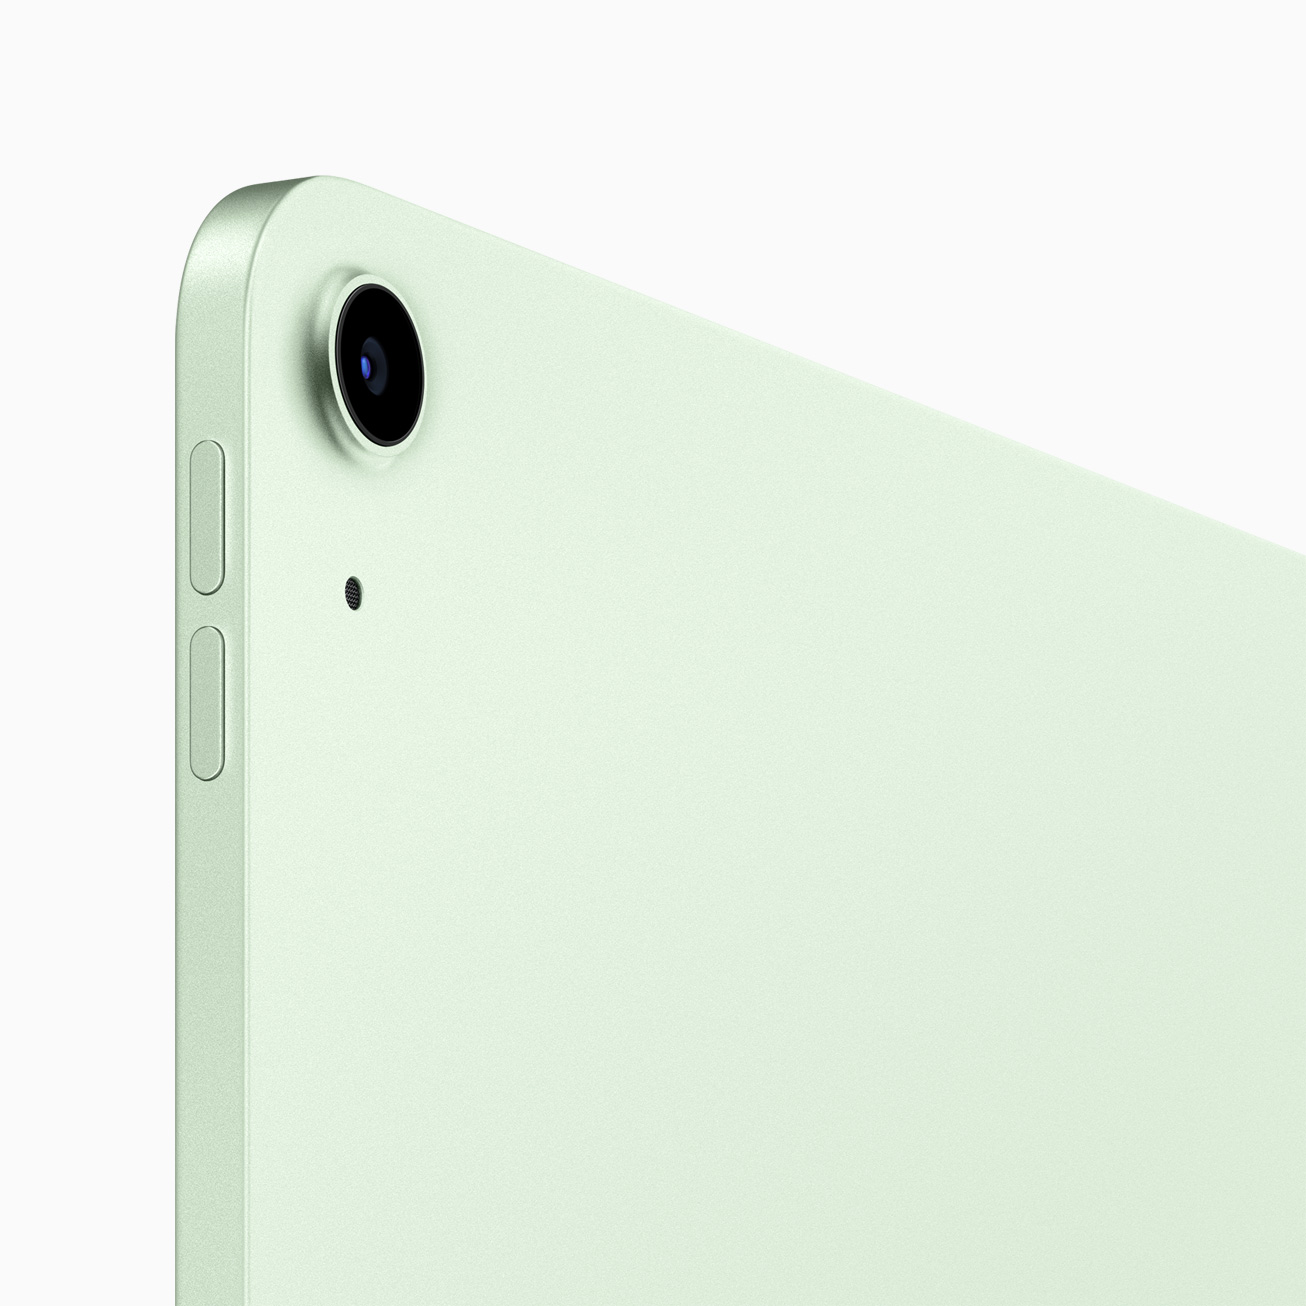 iPad Air 2020 announced: power button fingerprint sensor, new color  options, and more